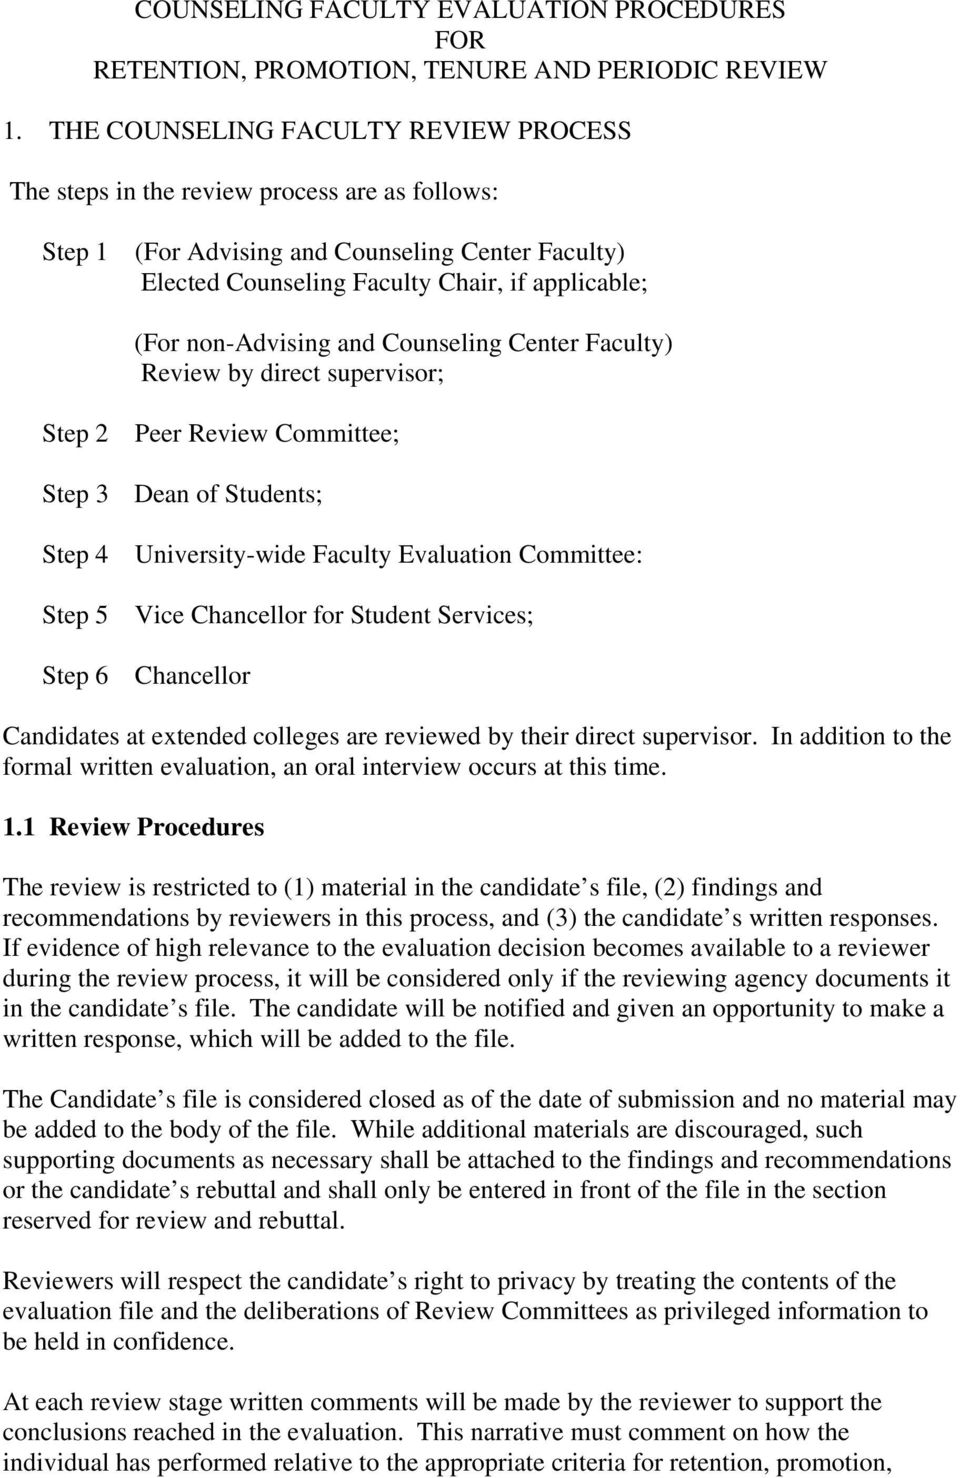 non-advising and Counseling Center Faculty) Review by direct supervisor; Step 2 Peer Review Committee; Step 3 Dean of Students; Step 4 University-wide Faculty Evaluation Committee: Step 5 Vice